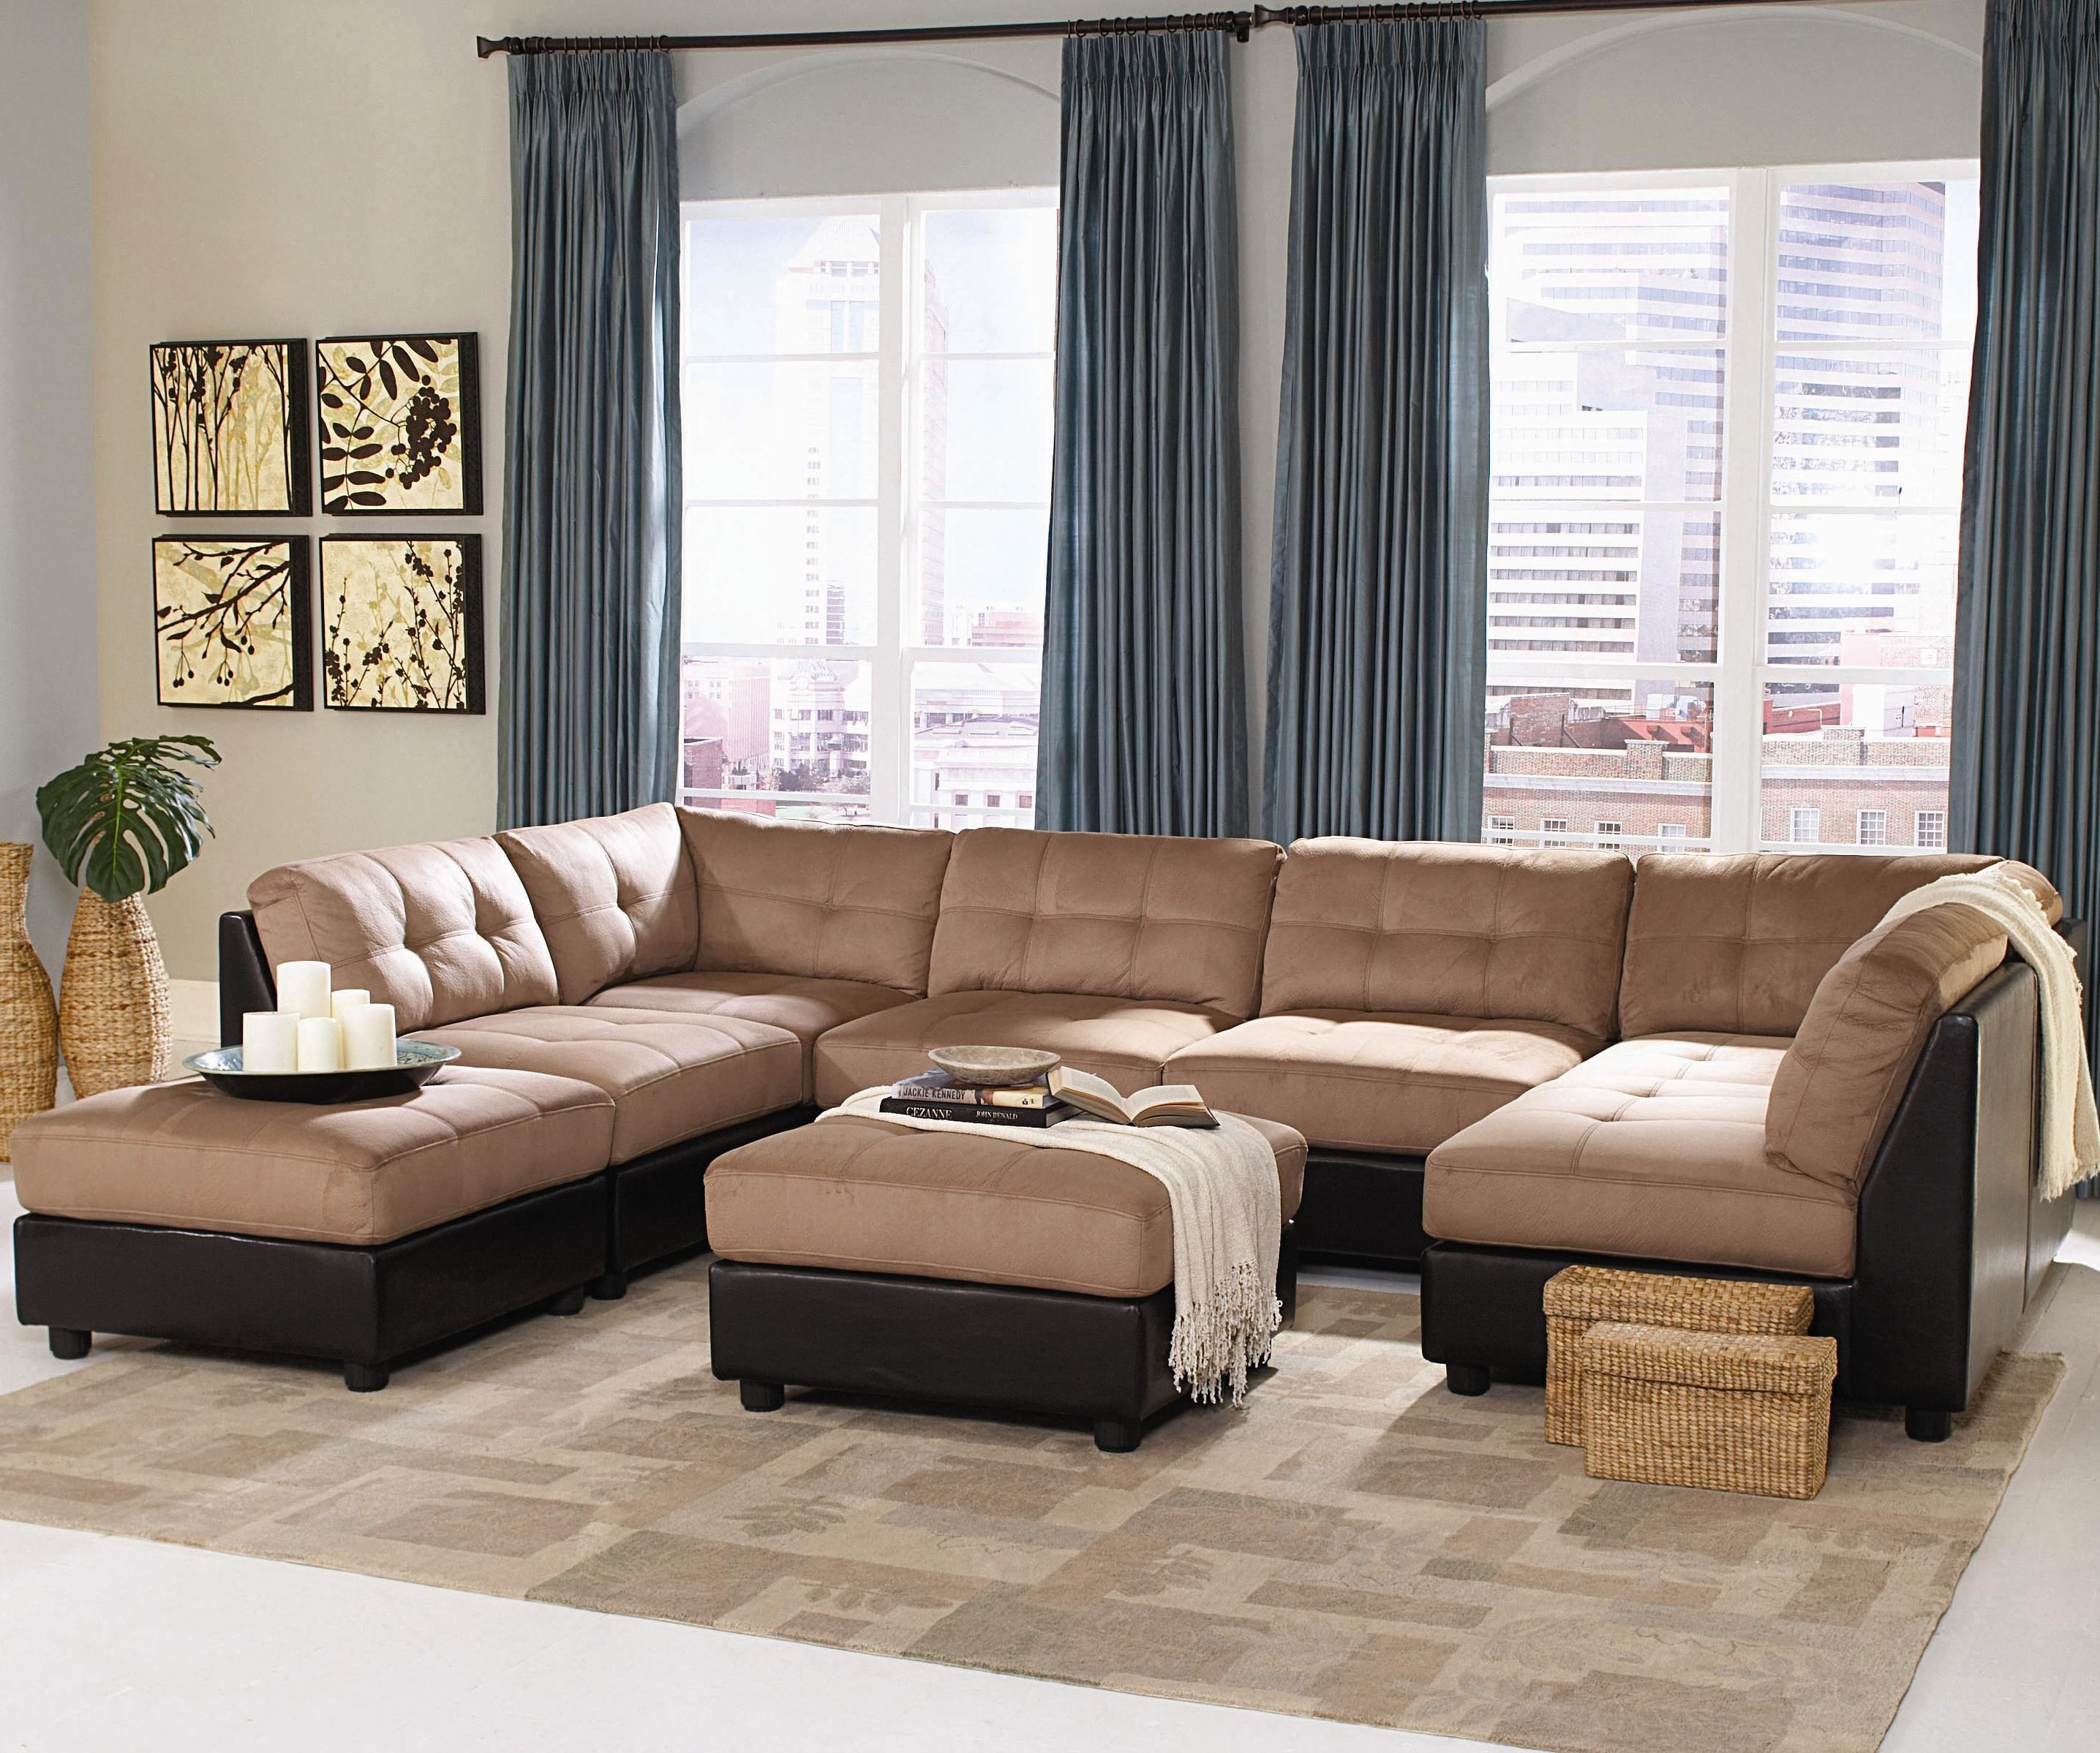 Living Room Low Furniture: 20 Top Traditional Sectional Sofas Living Room Furniture